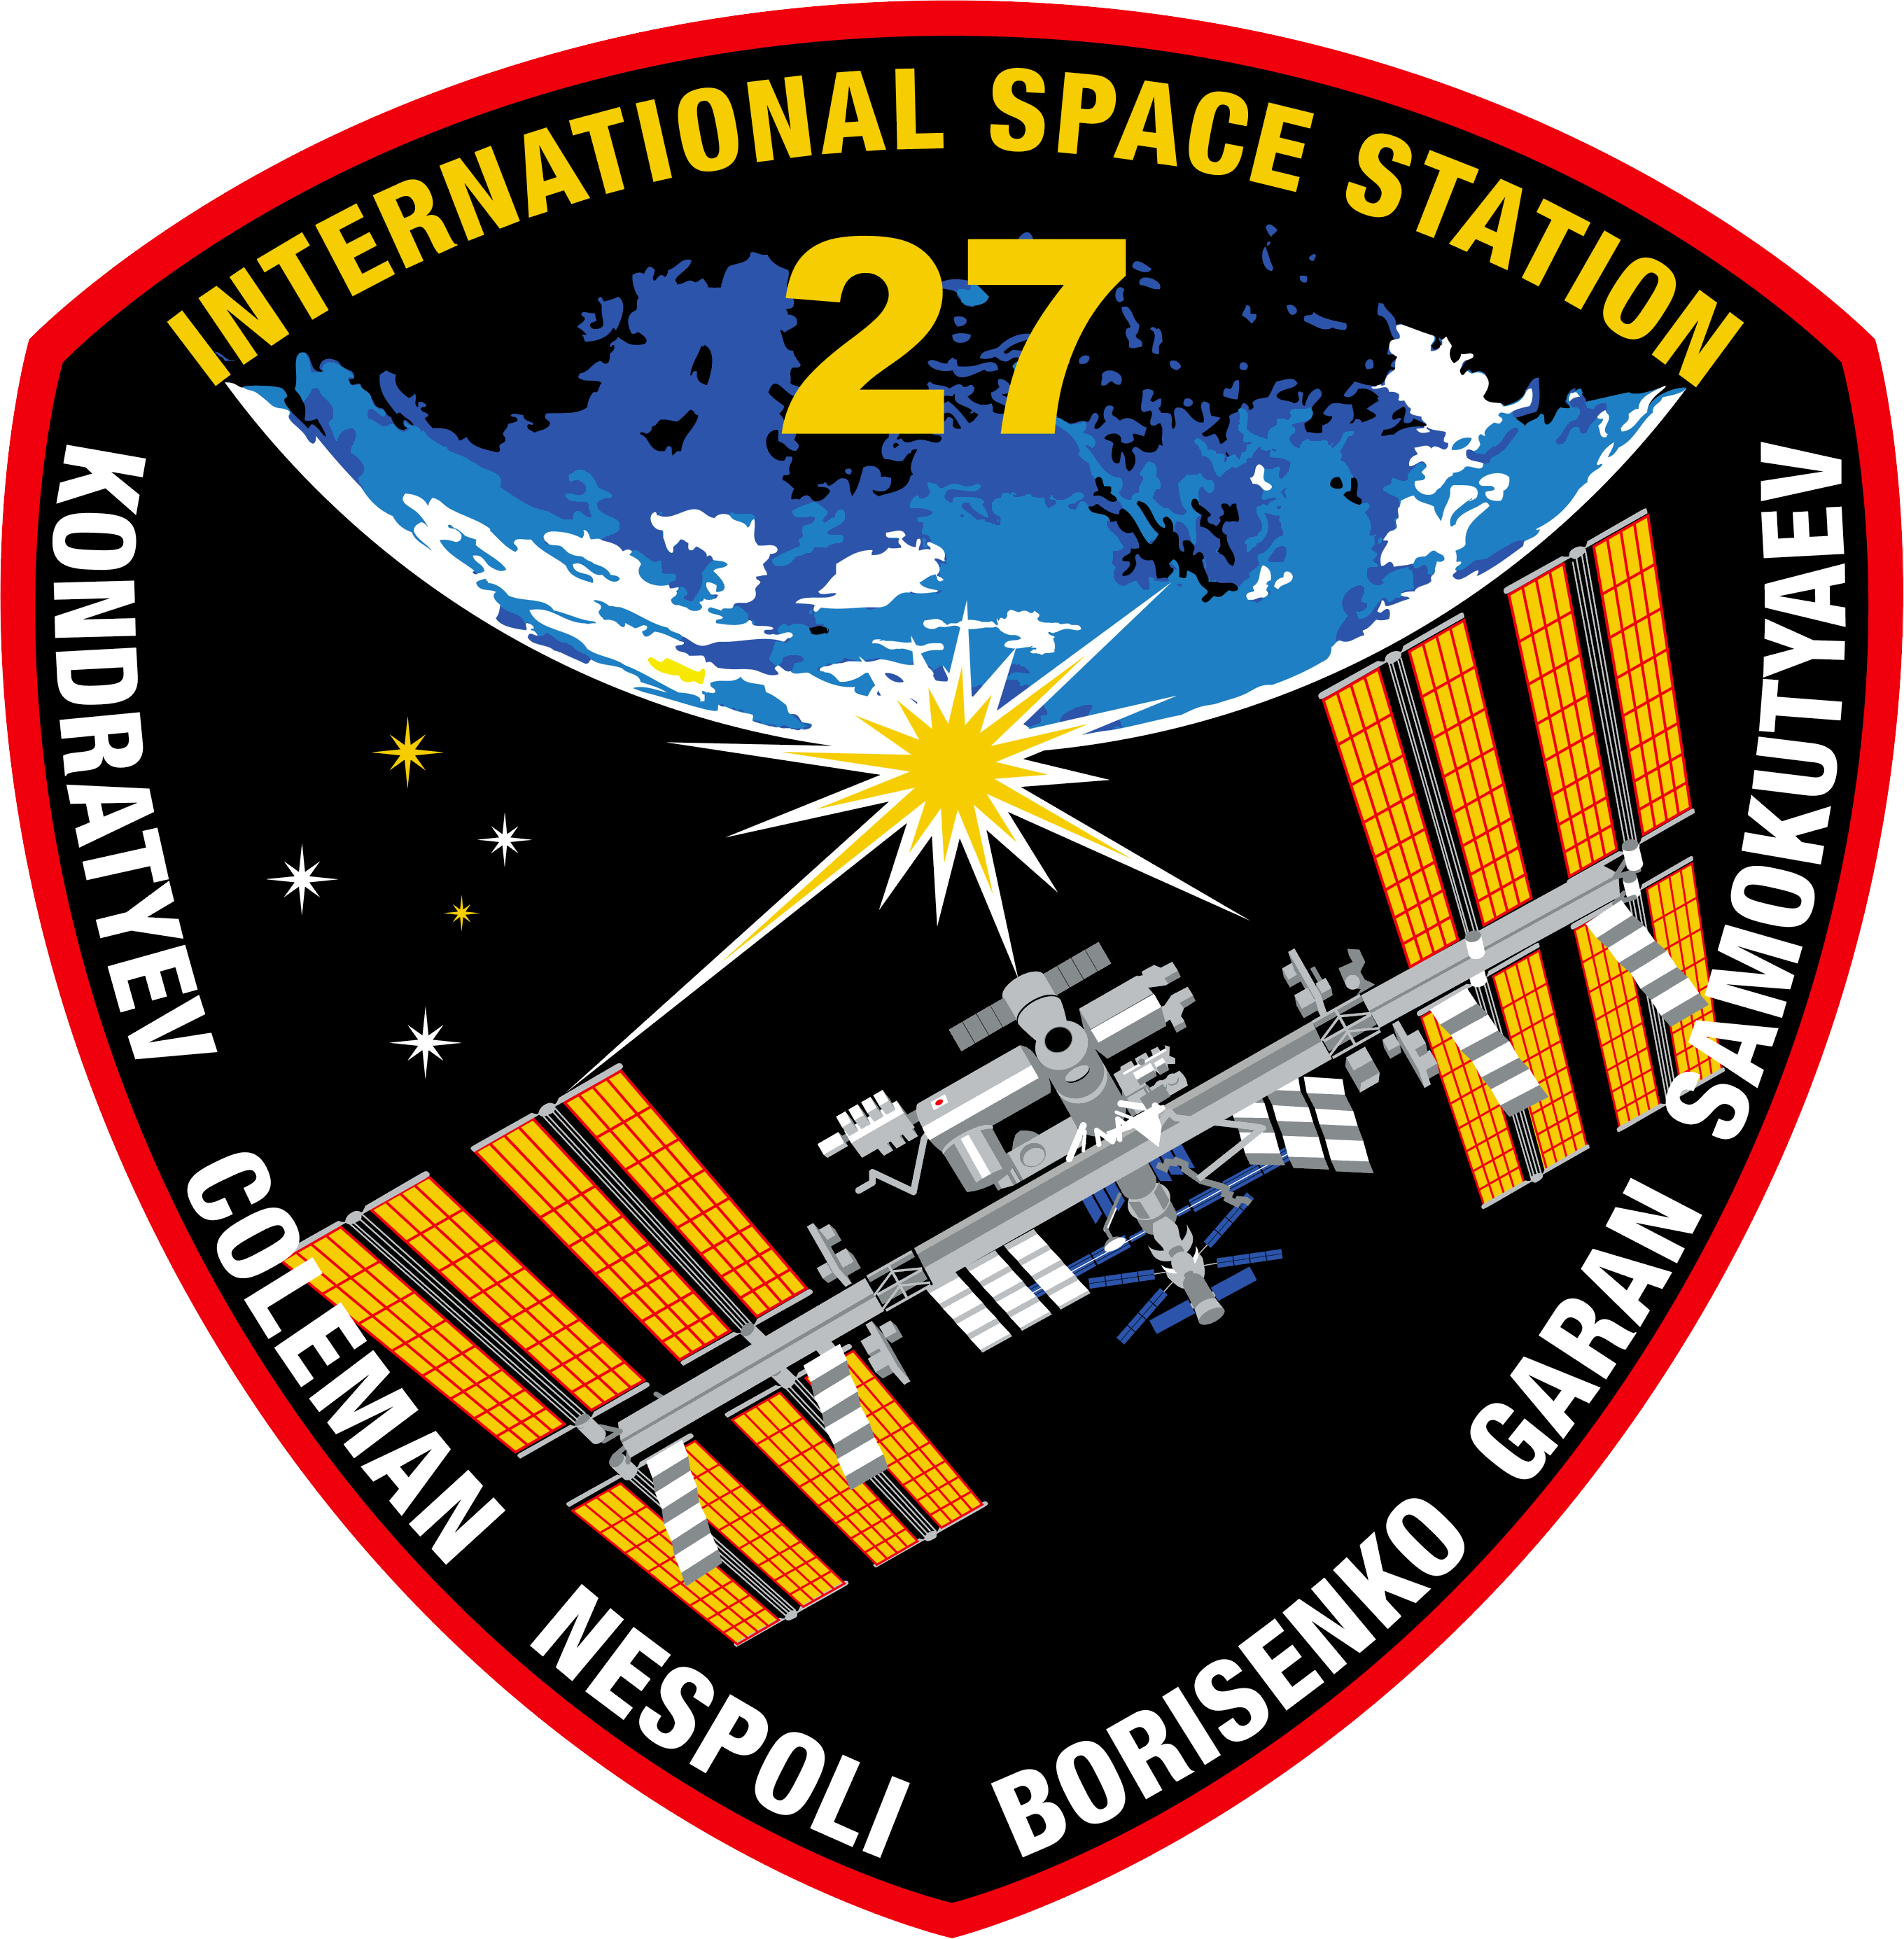 Iss PNG - 70197